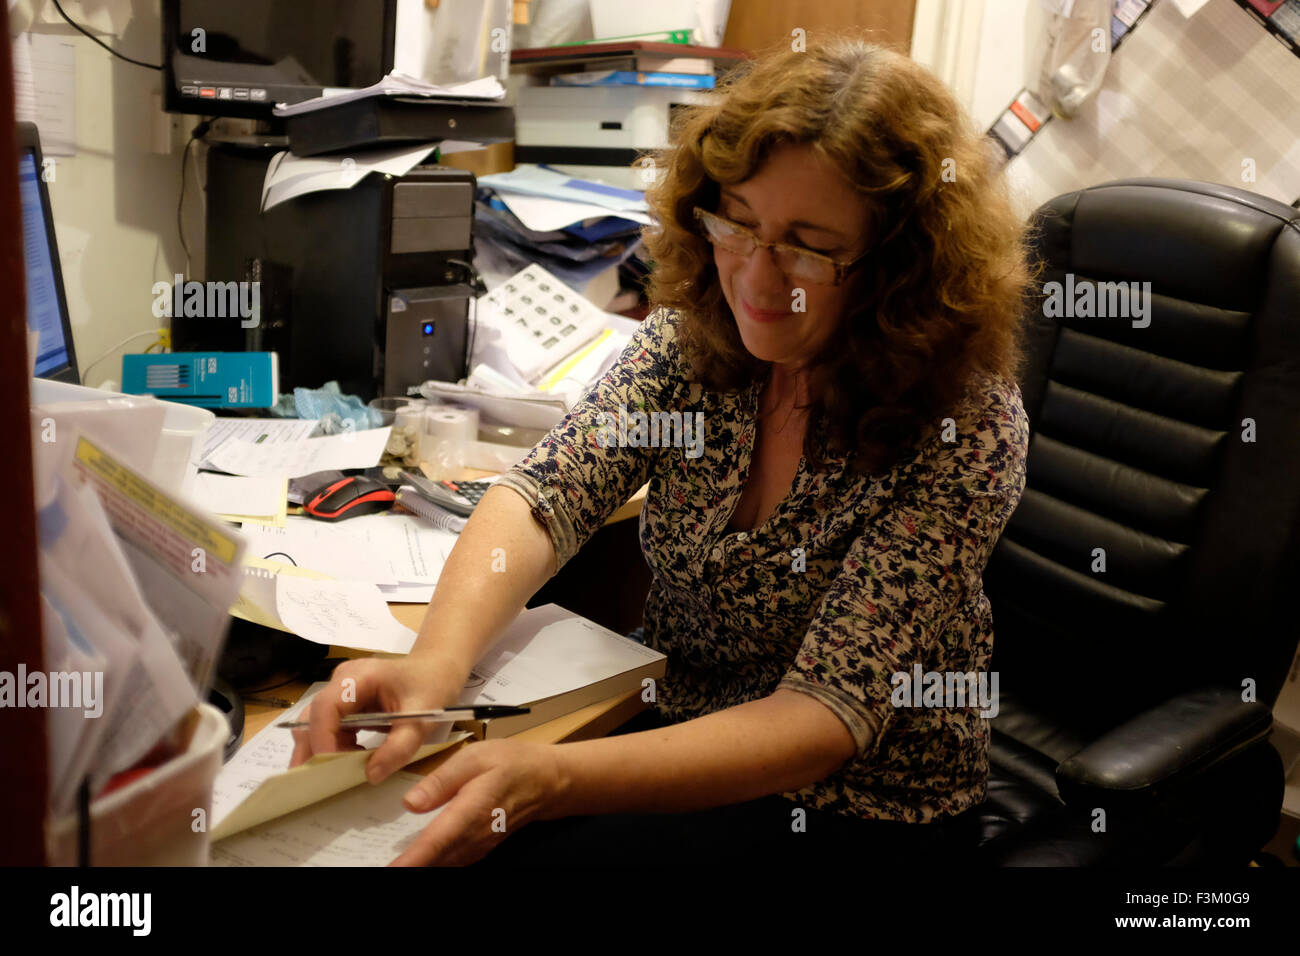 Sally Cass landlady in office The Duke of York Pub customers beer drinking band Yacht Racing, Shore side entertainments, - Stock Image